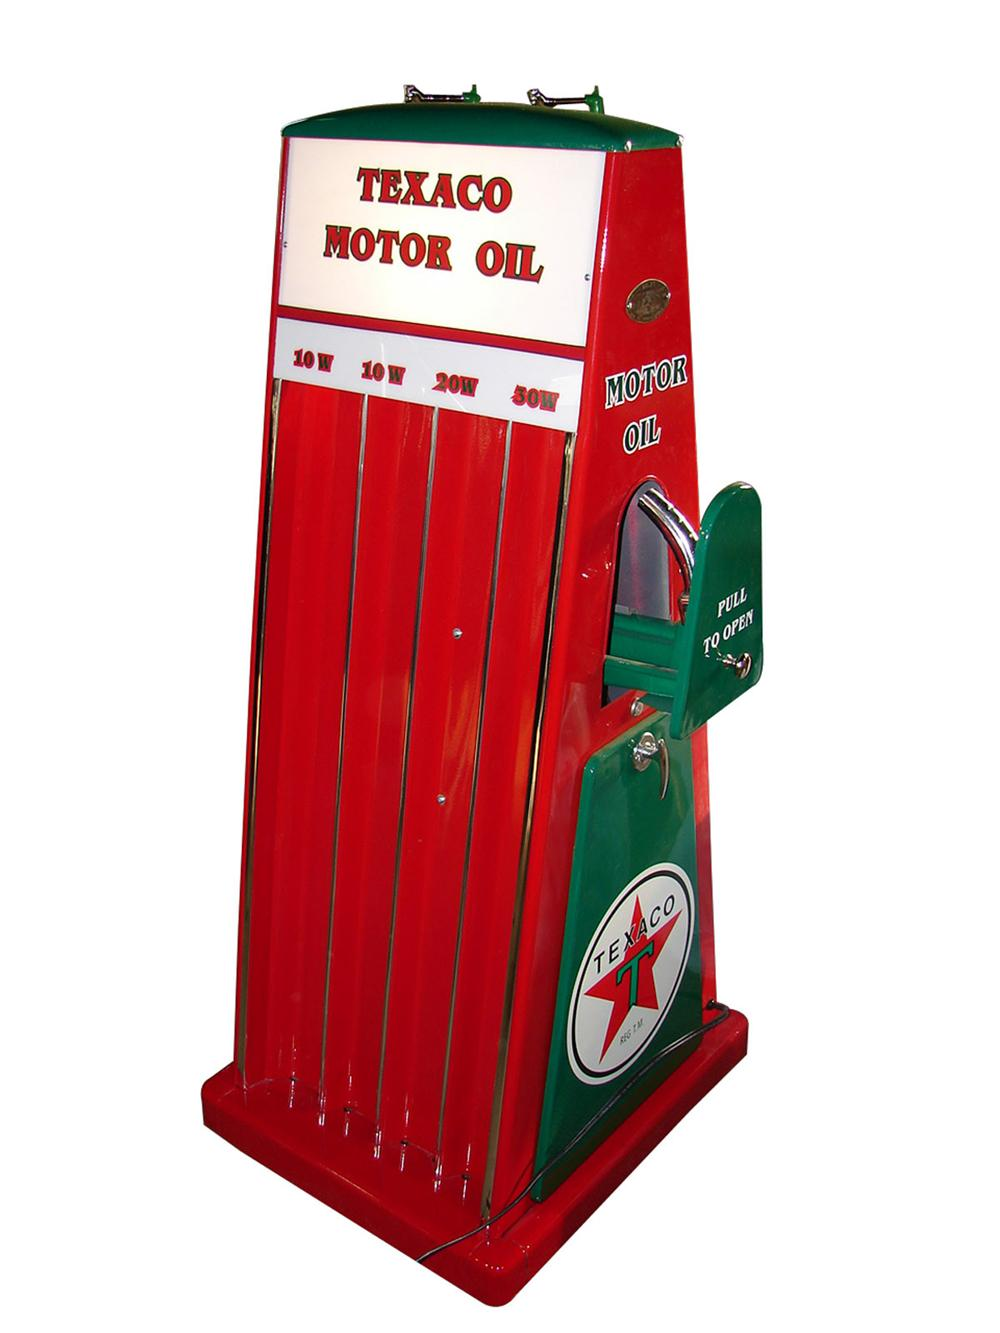 Outstanding 1940s 50s Texaco Motor Oil Service Station Fuel I